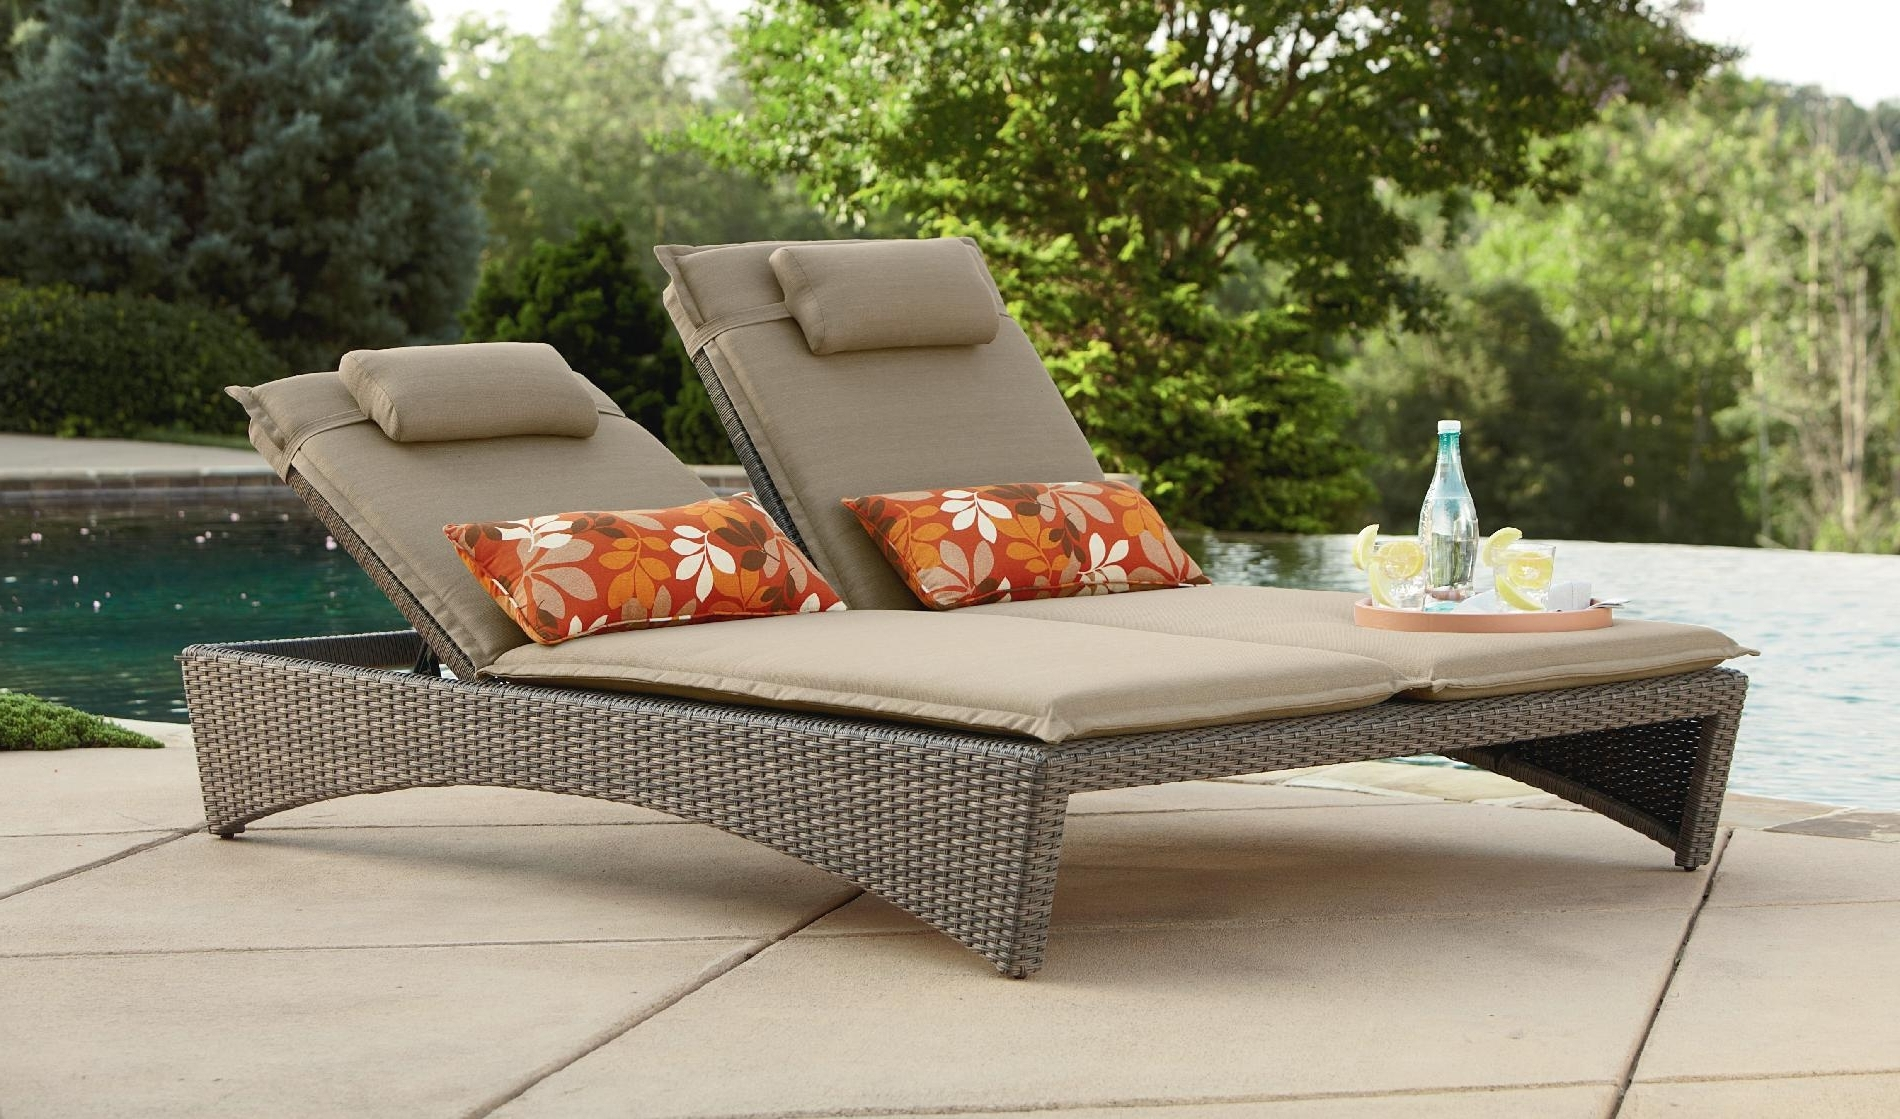 Patio Furniture Chaise Lounges In Well Known Sears Chaise Lounge Chairs Patio Furniture • Lounge Chairs Ideas (View 13 of 15)